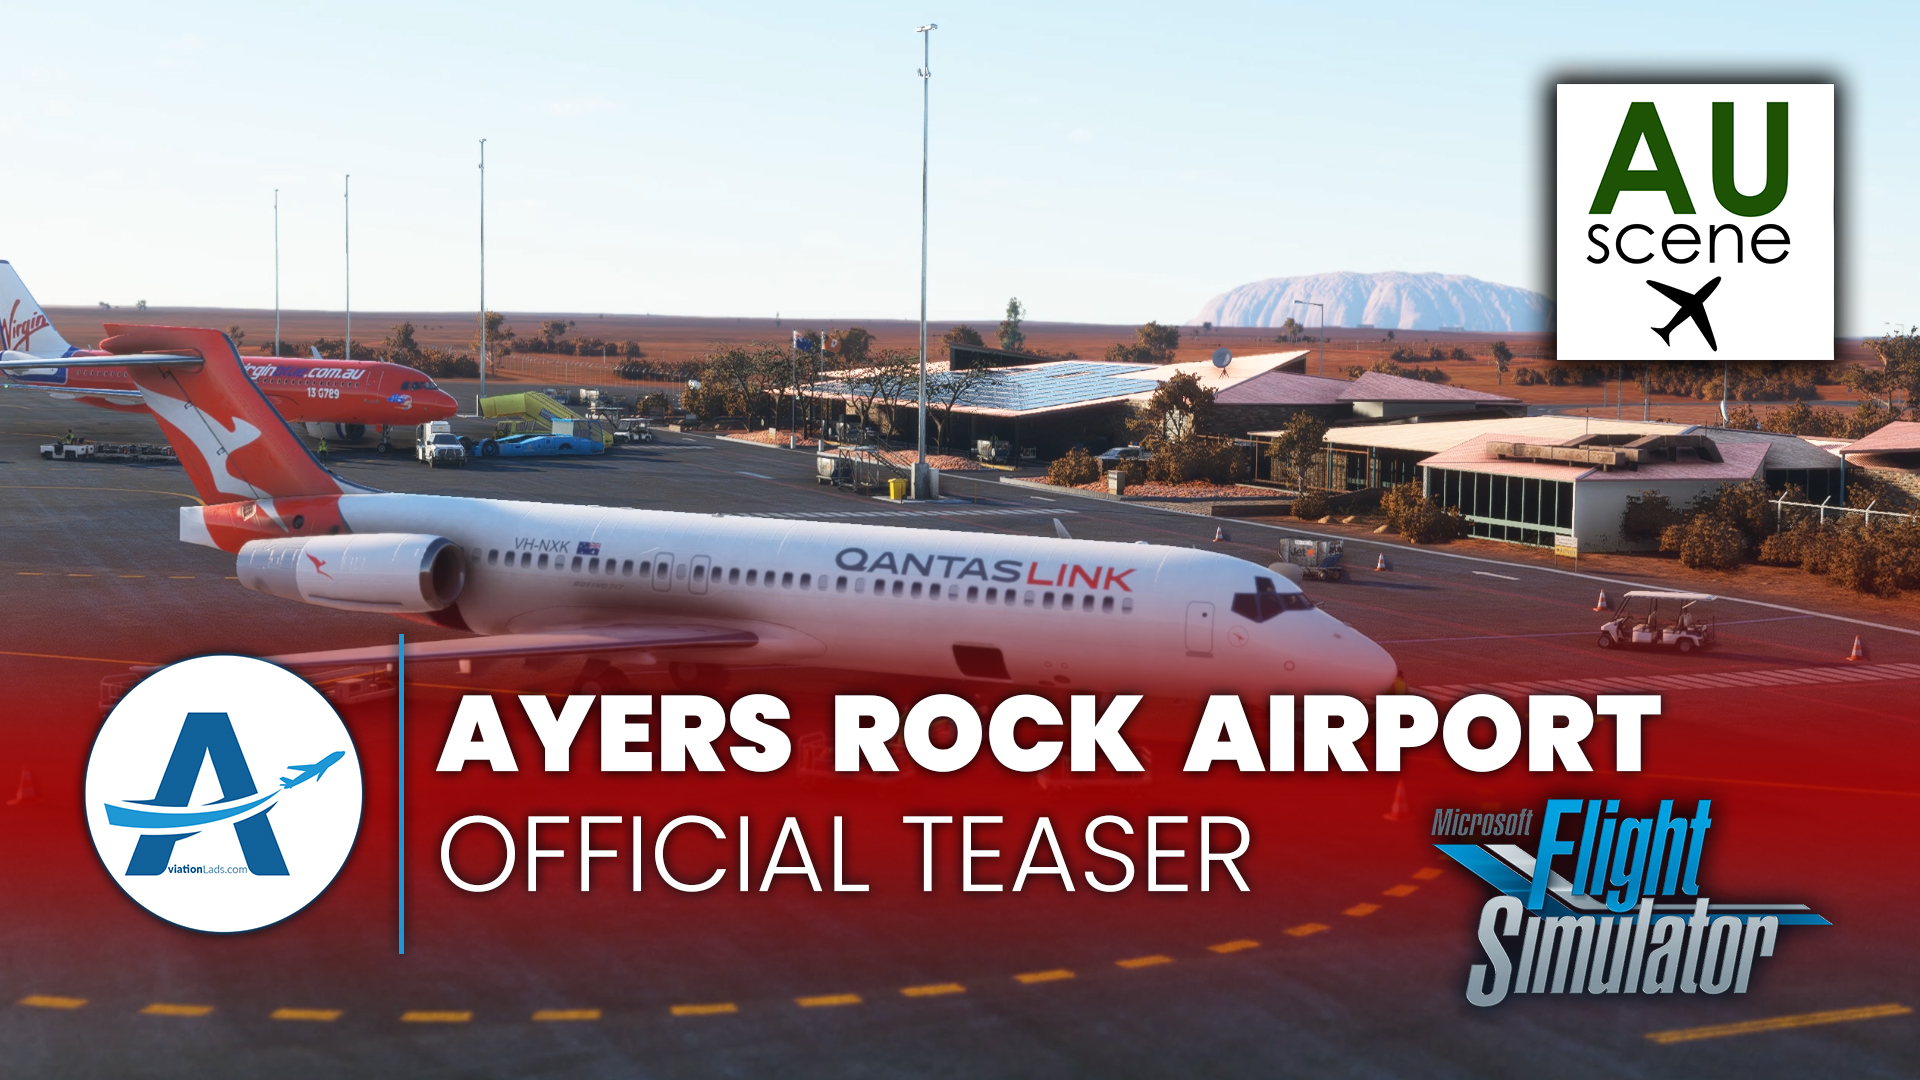 [TEASER] AUscene – Ayers Rock Airport